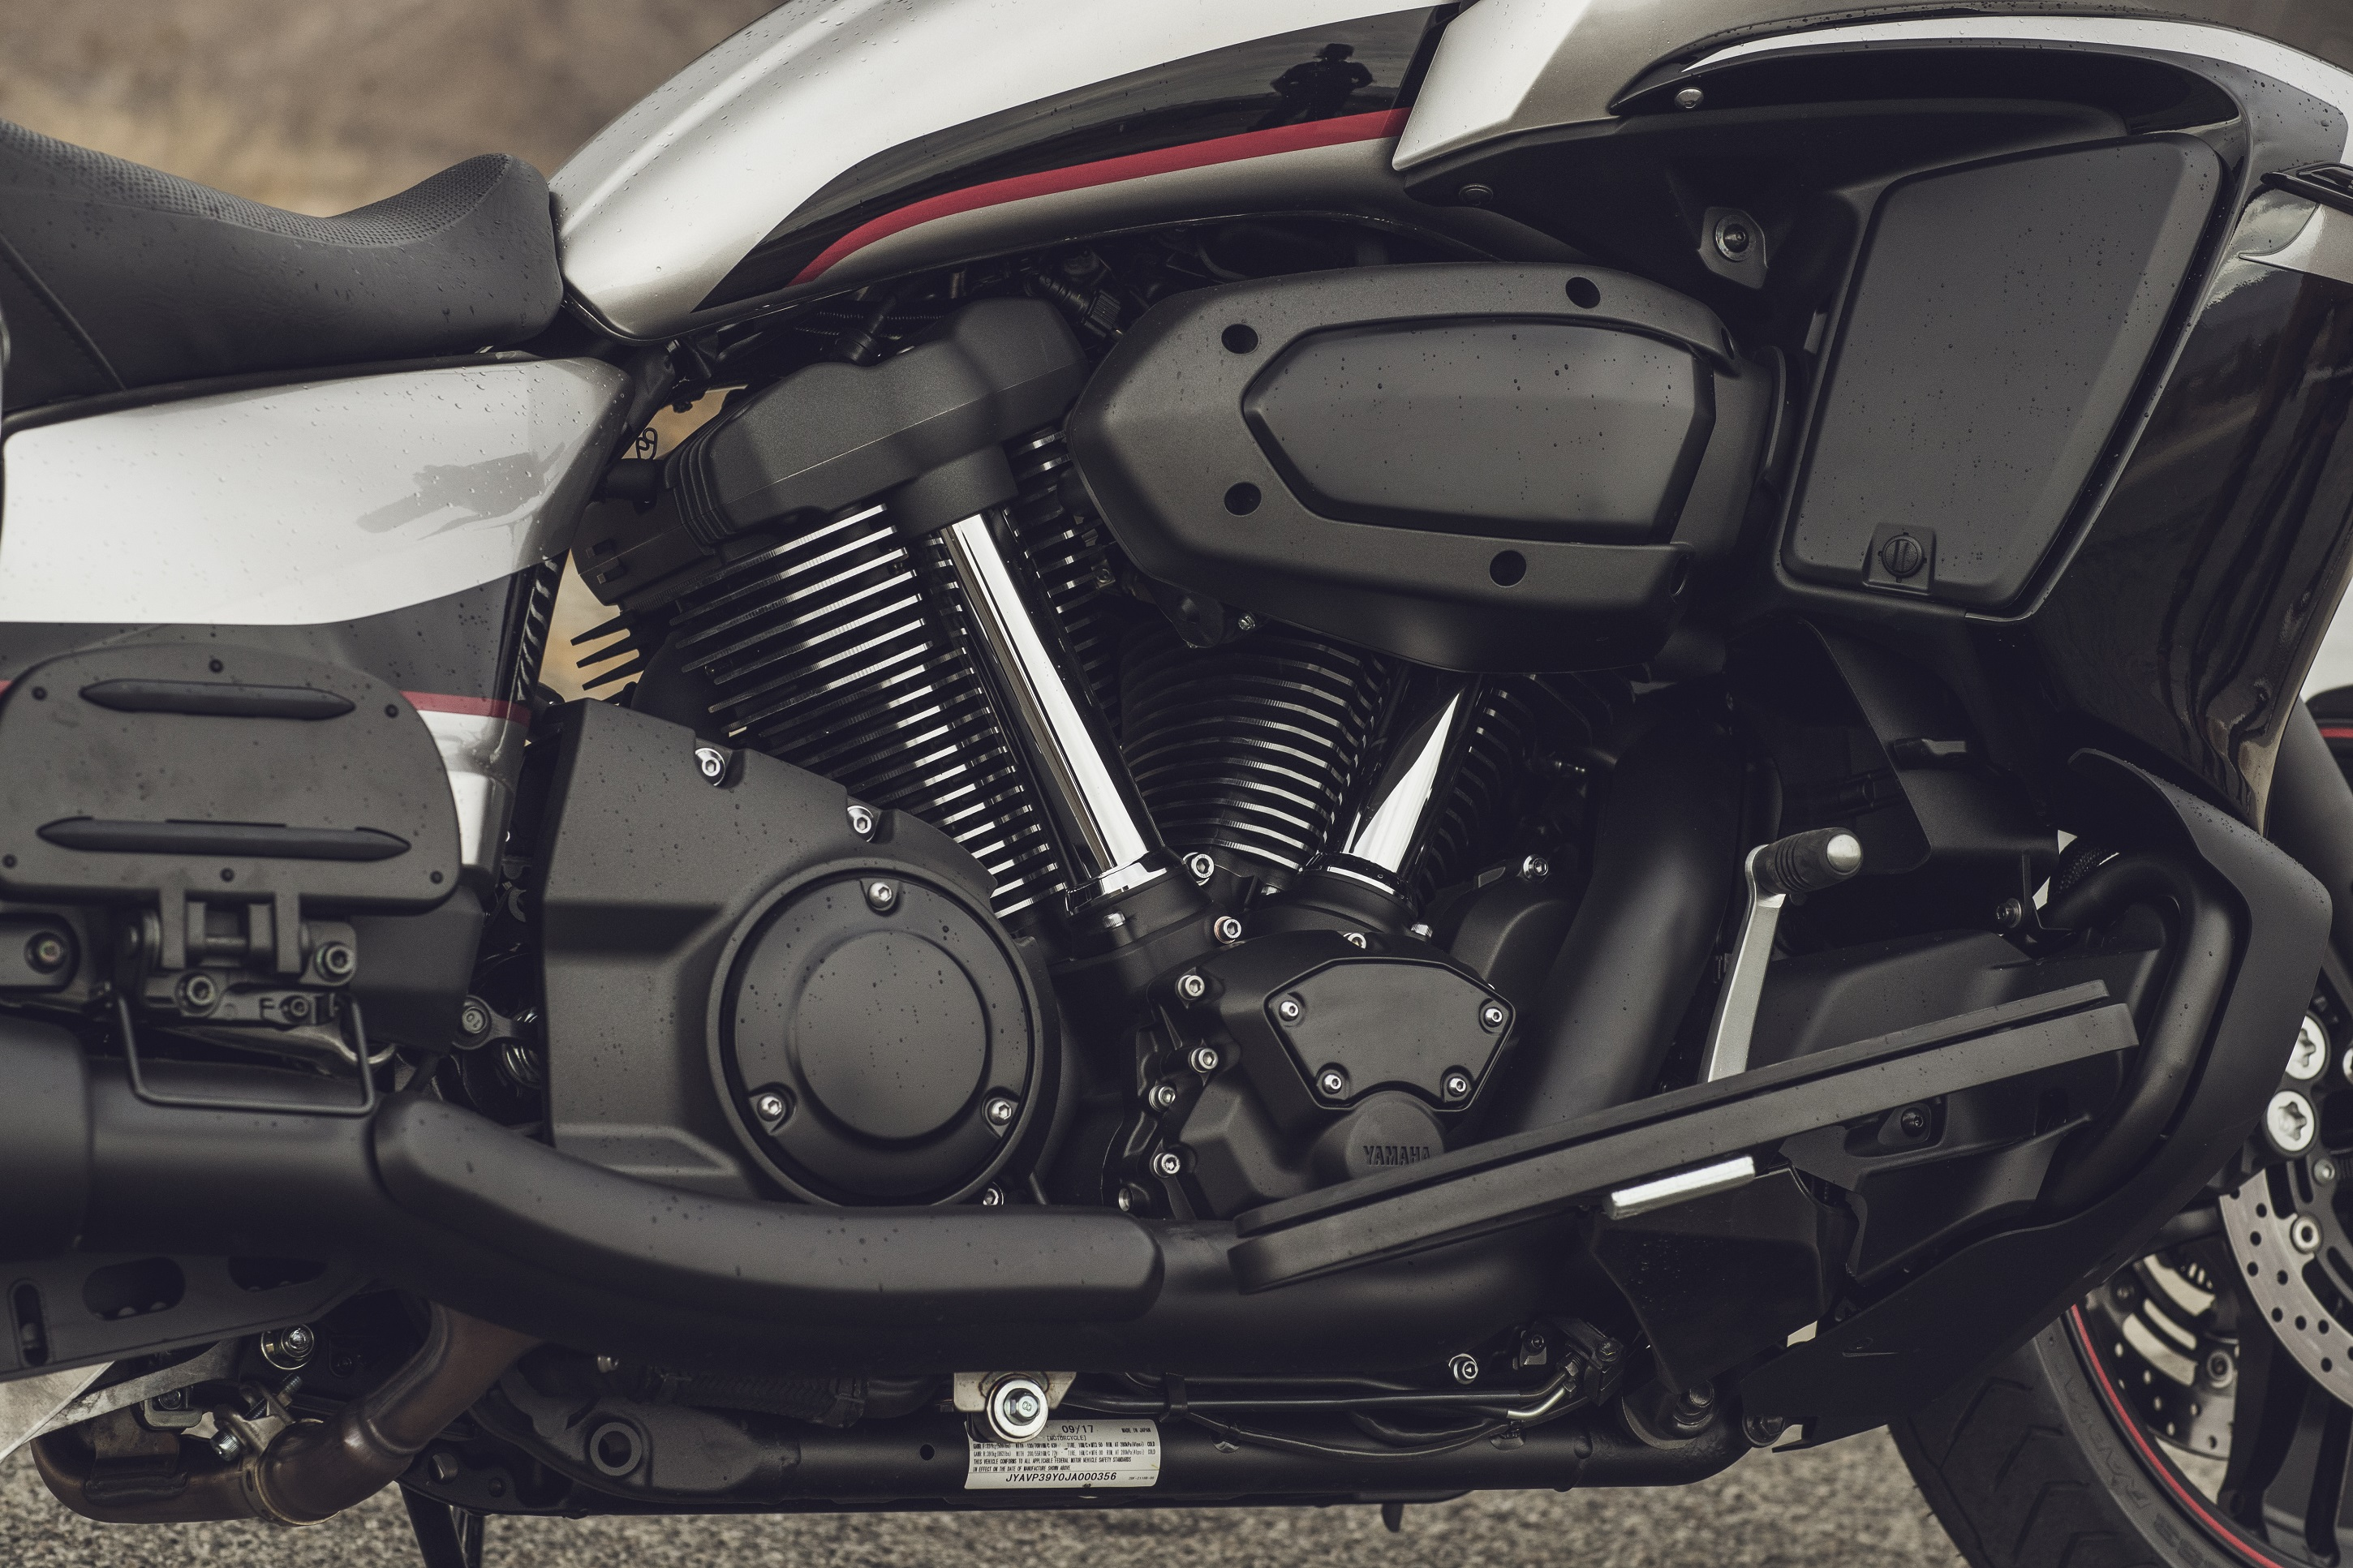 2018 Yamaha Star Eluder first ride review - RevZilla